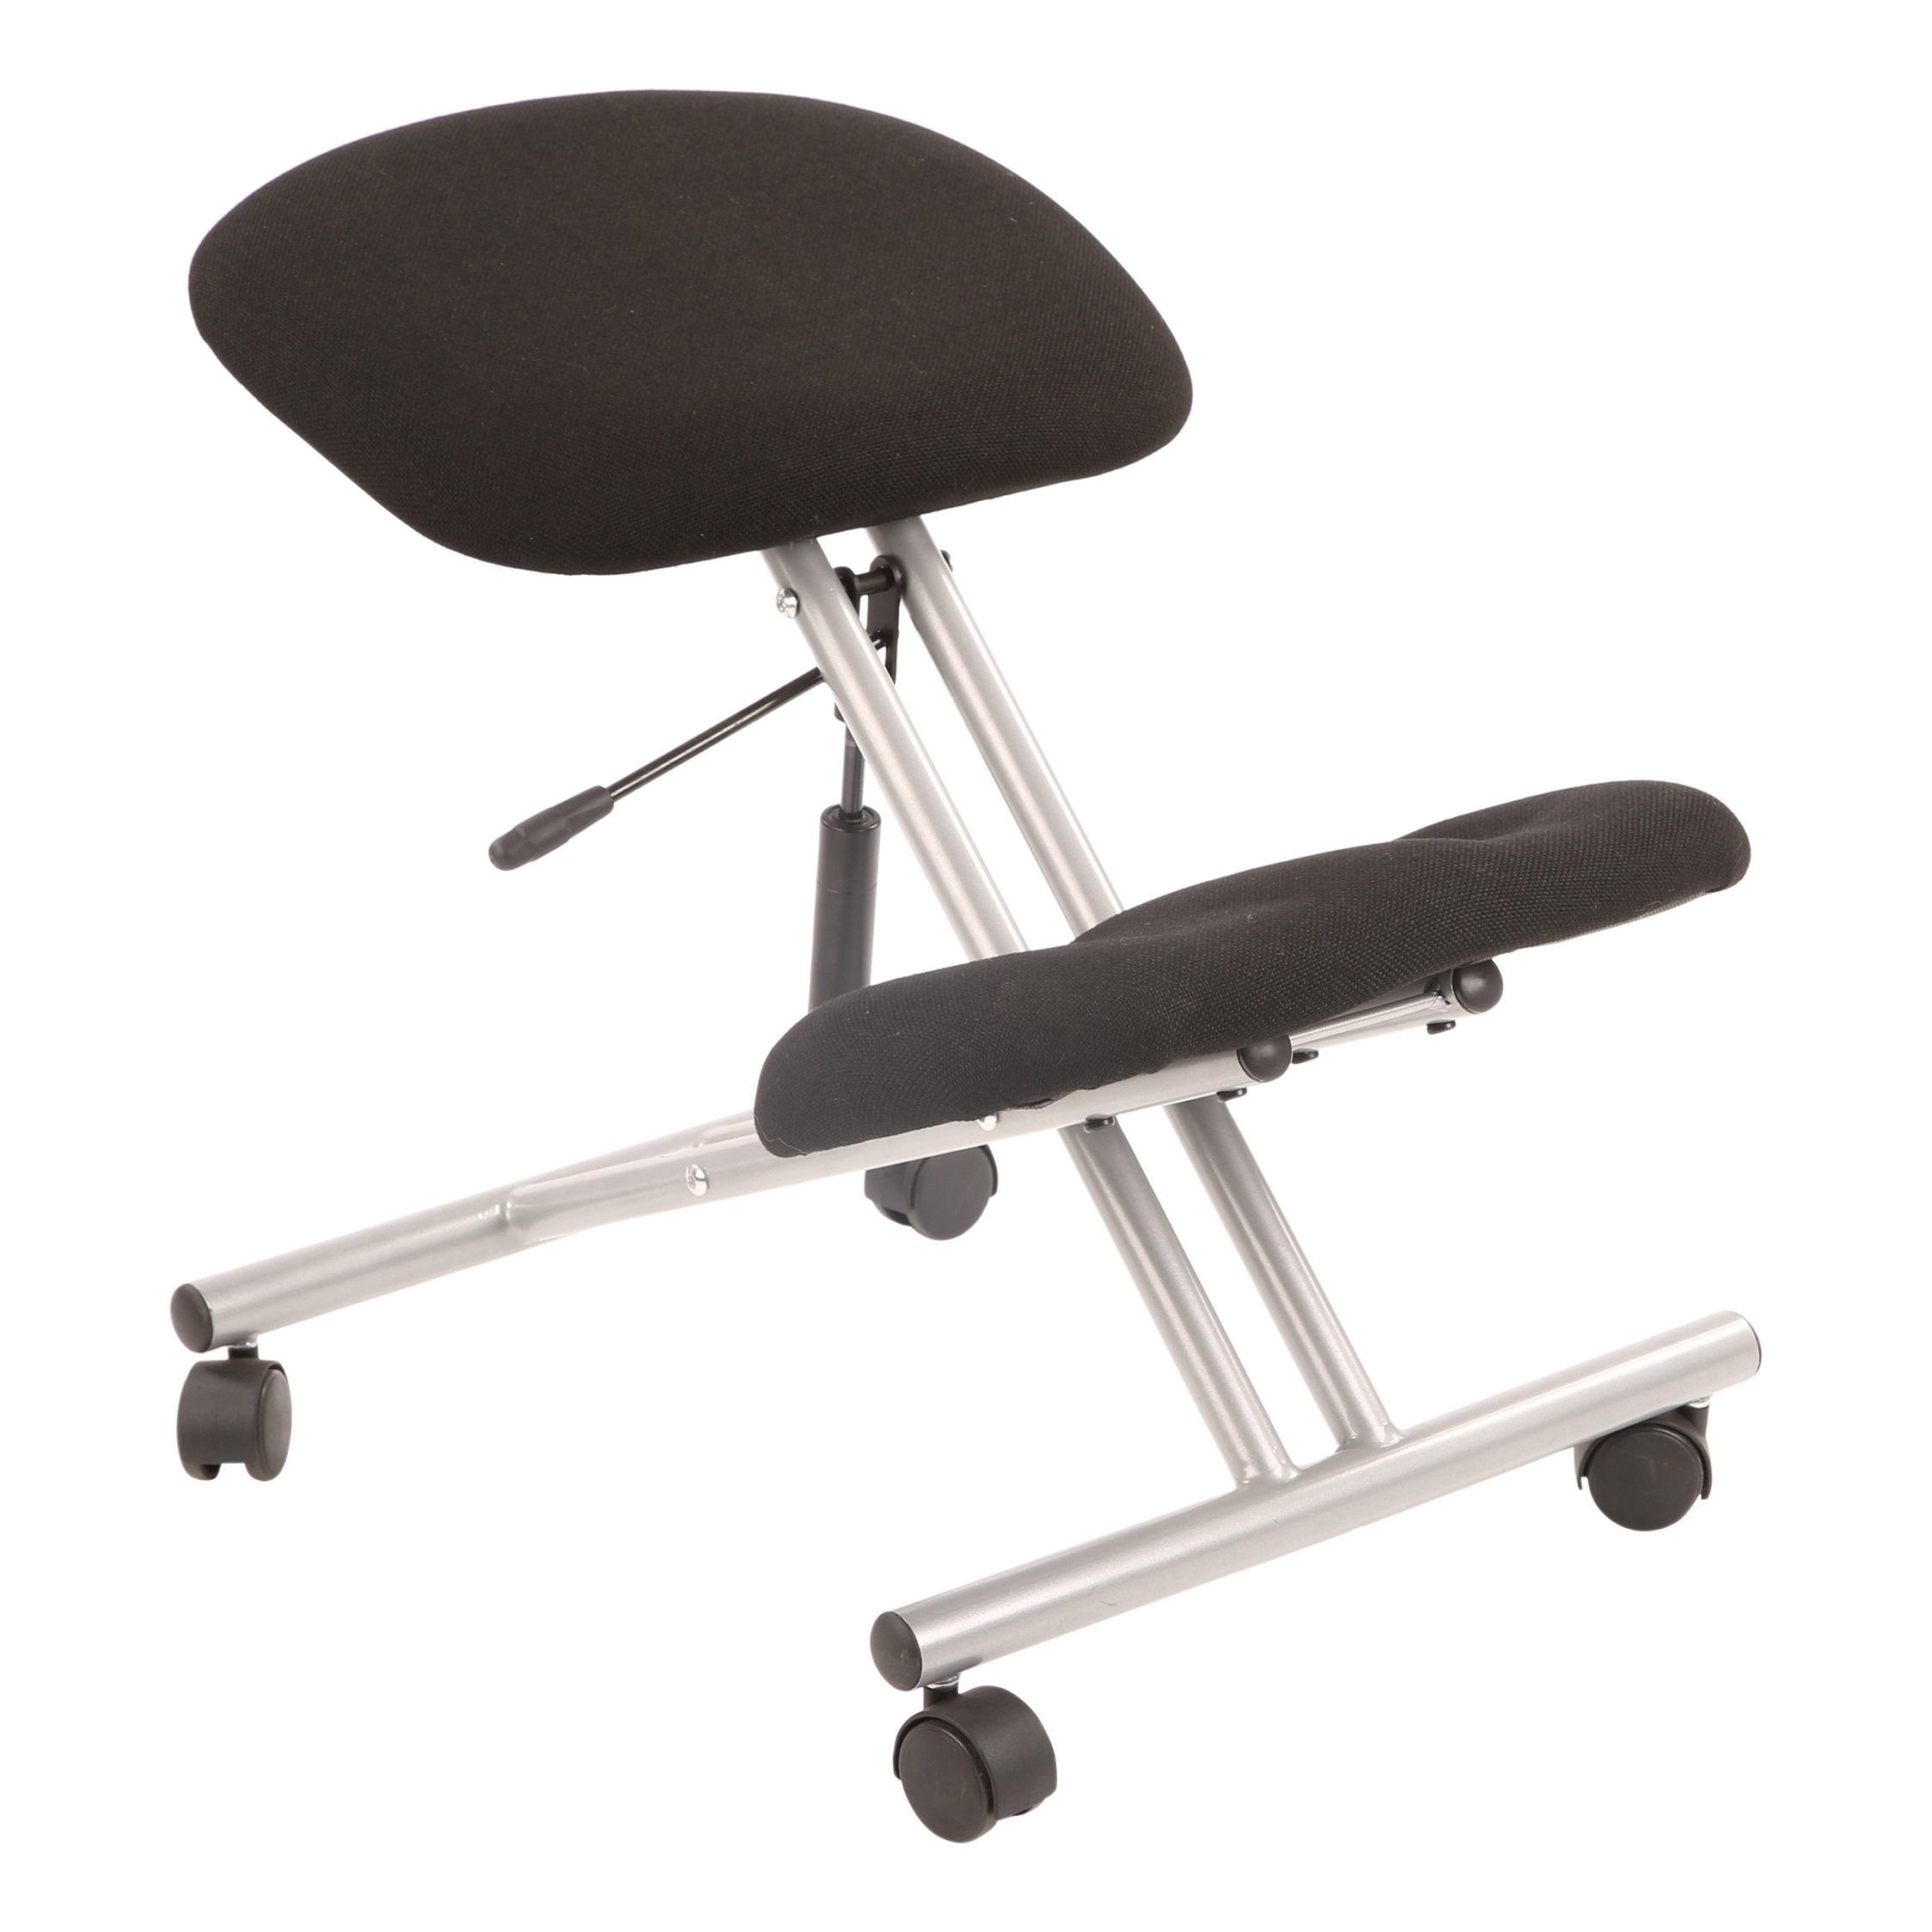 Trexus Kneeling Chair Black 430x330x480-620mm Ref OP000072